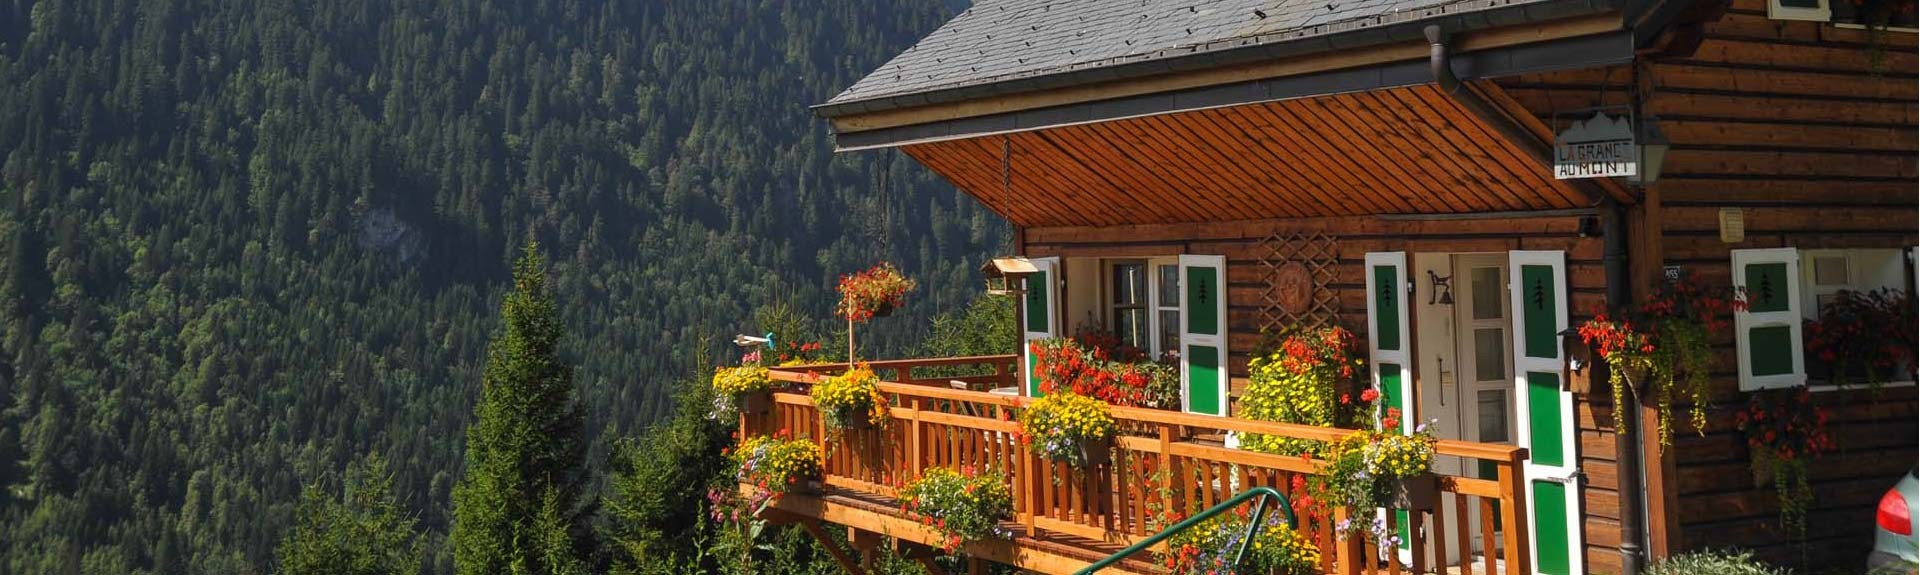 Appartements, chalets